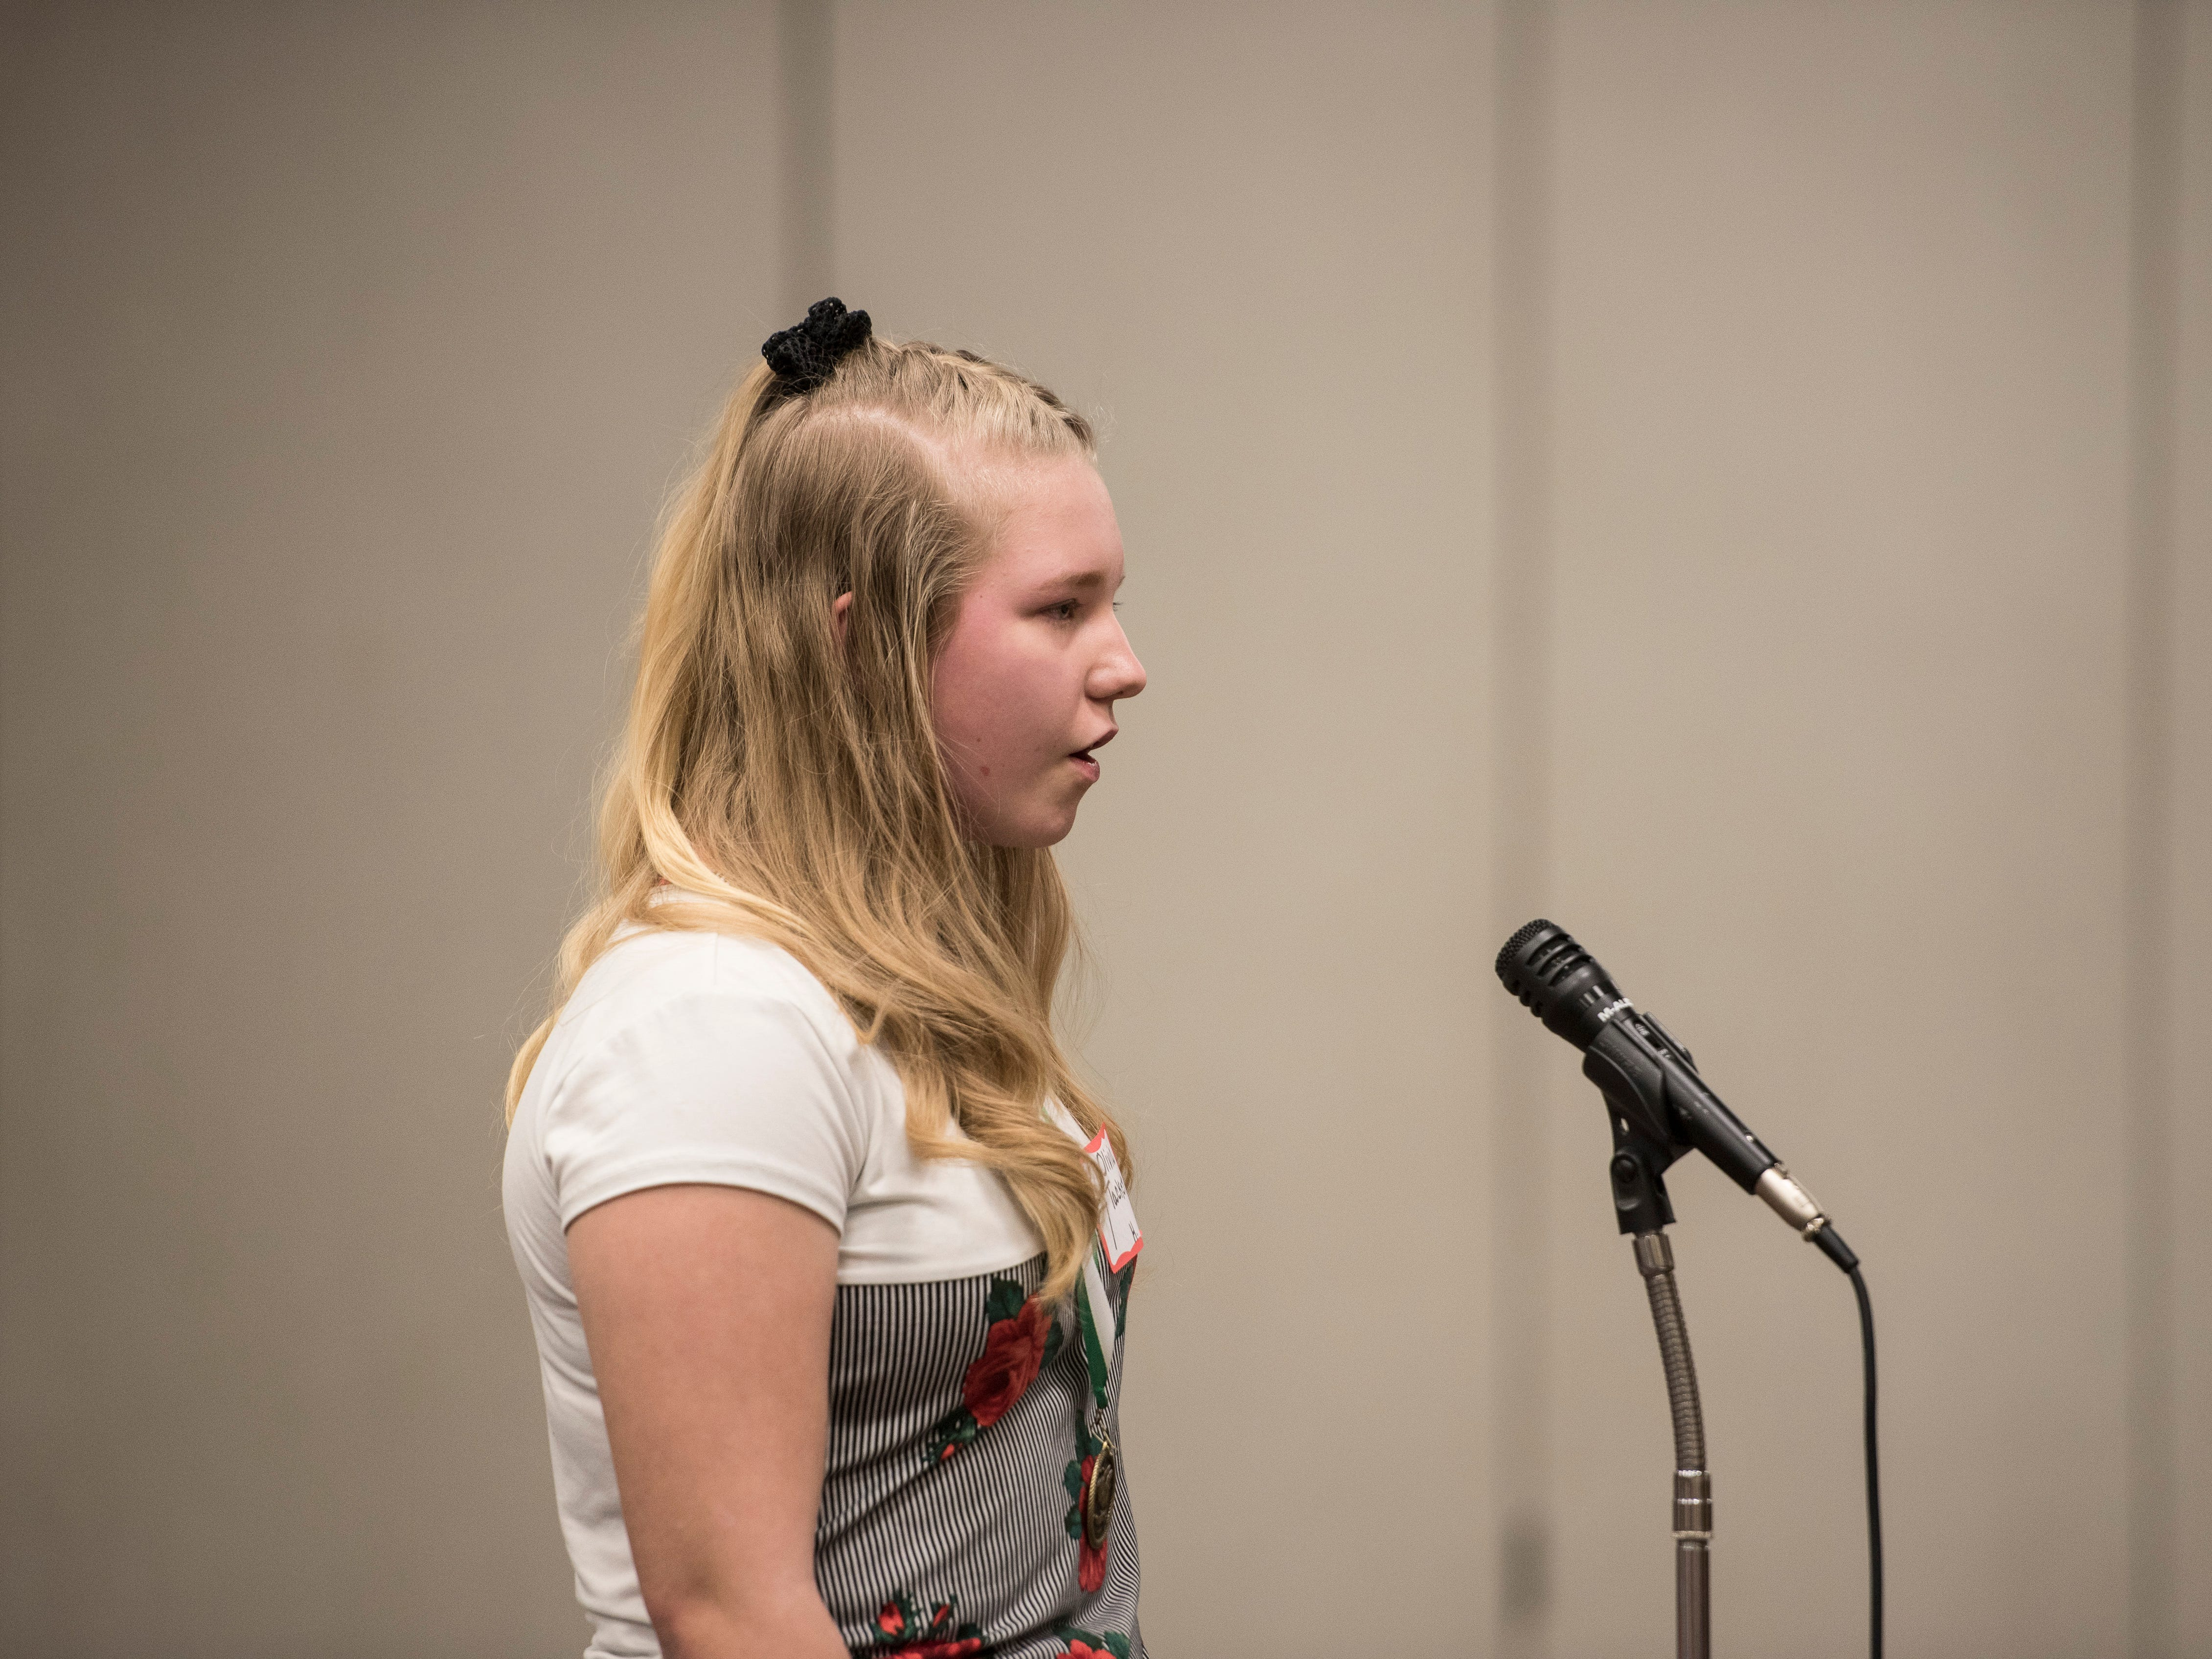 The 2019 Ross County Spelling Bee was held at the Ross County Service Center on Thursday, Feb. 14, 2019, with Zane Trace eighth-grader Macy Long taking top honors.